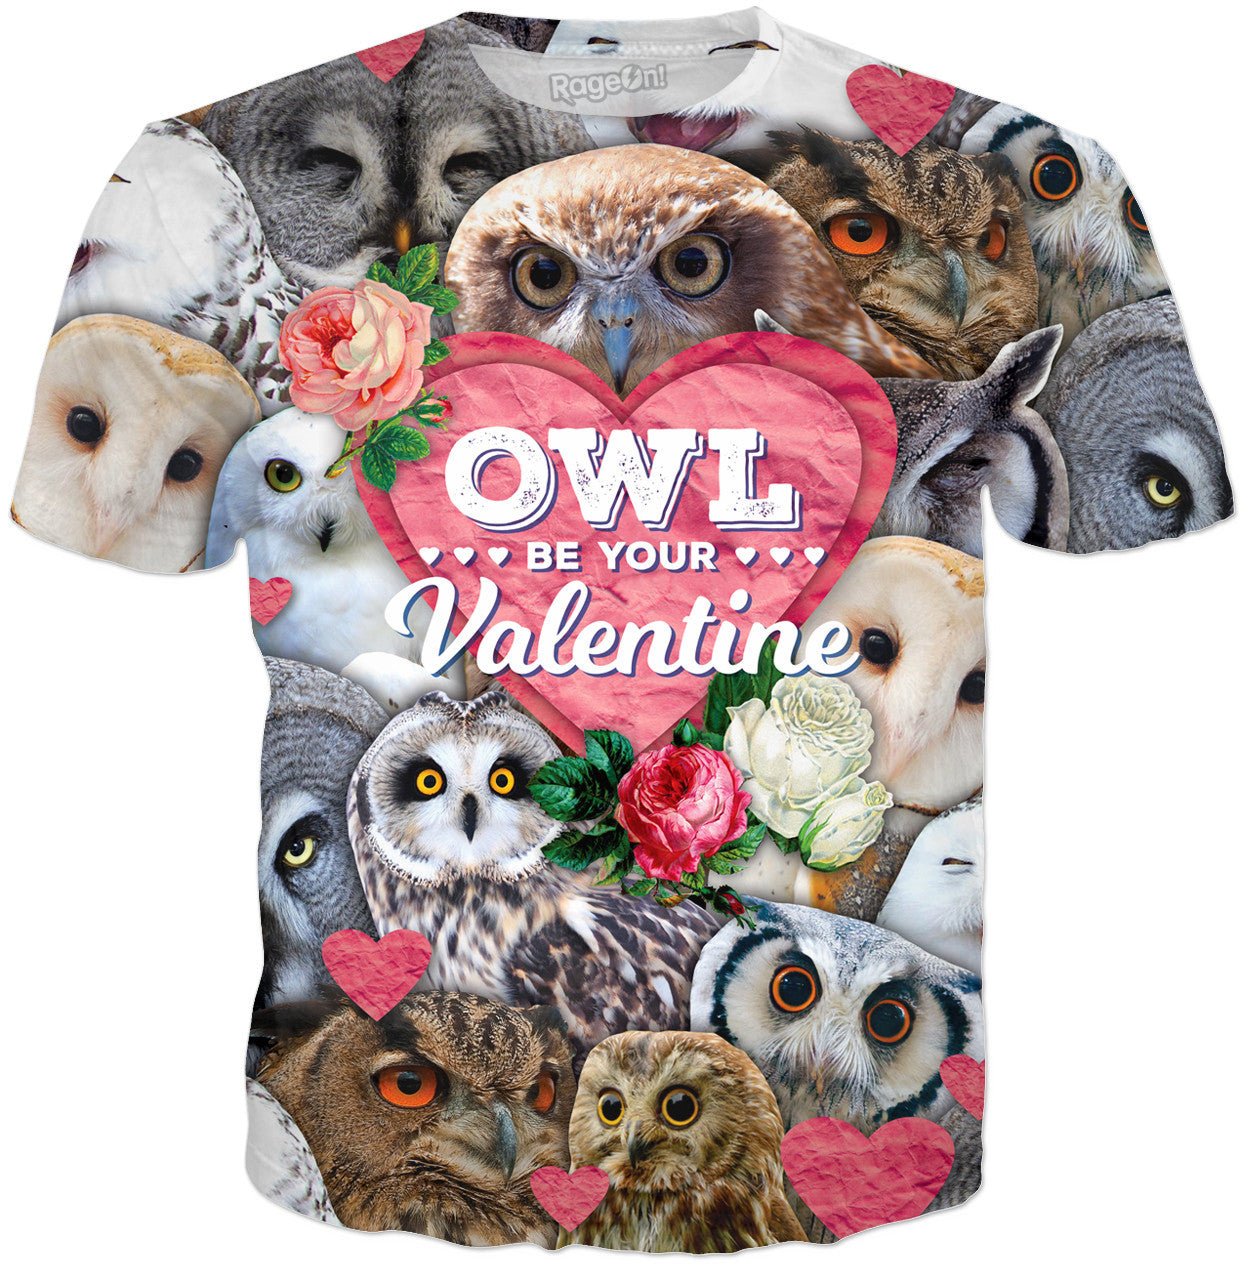 Owl Be Your Valentine T-Shirt